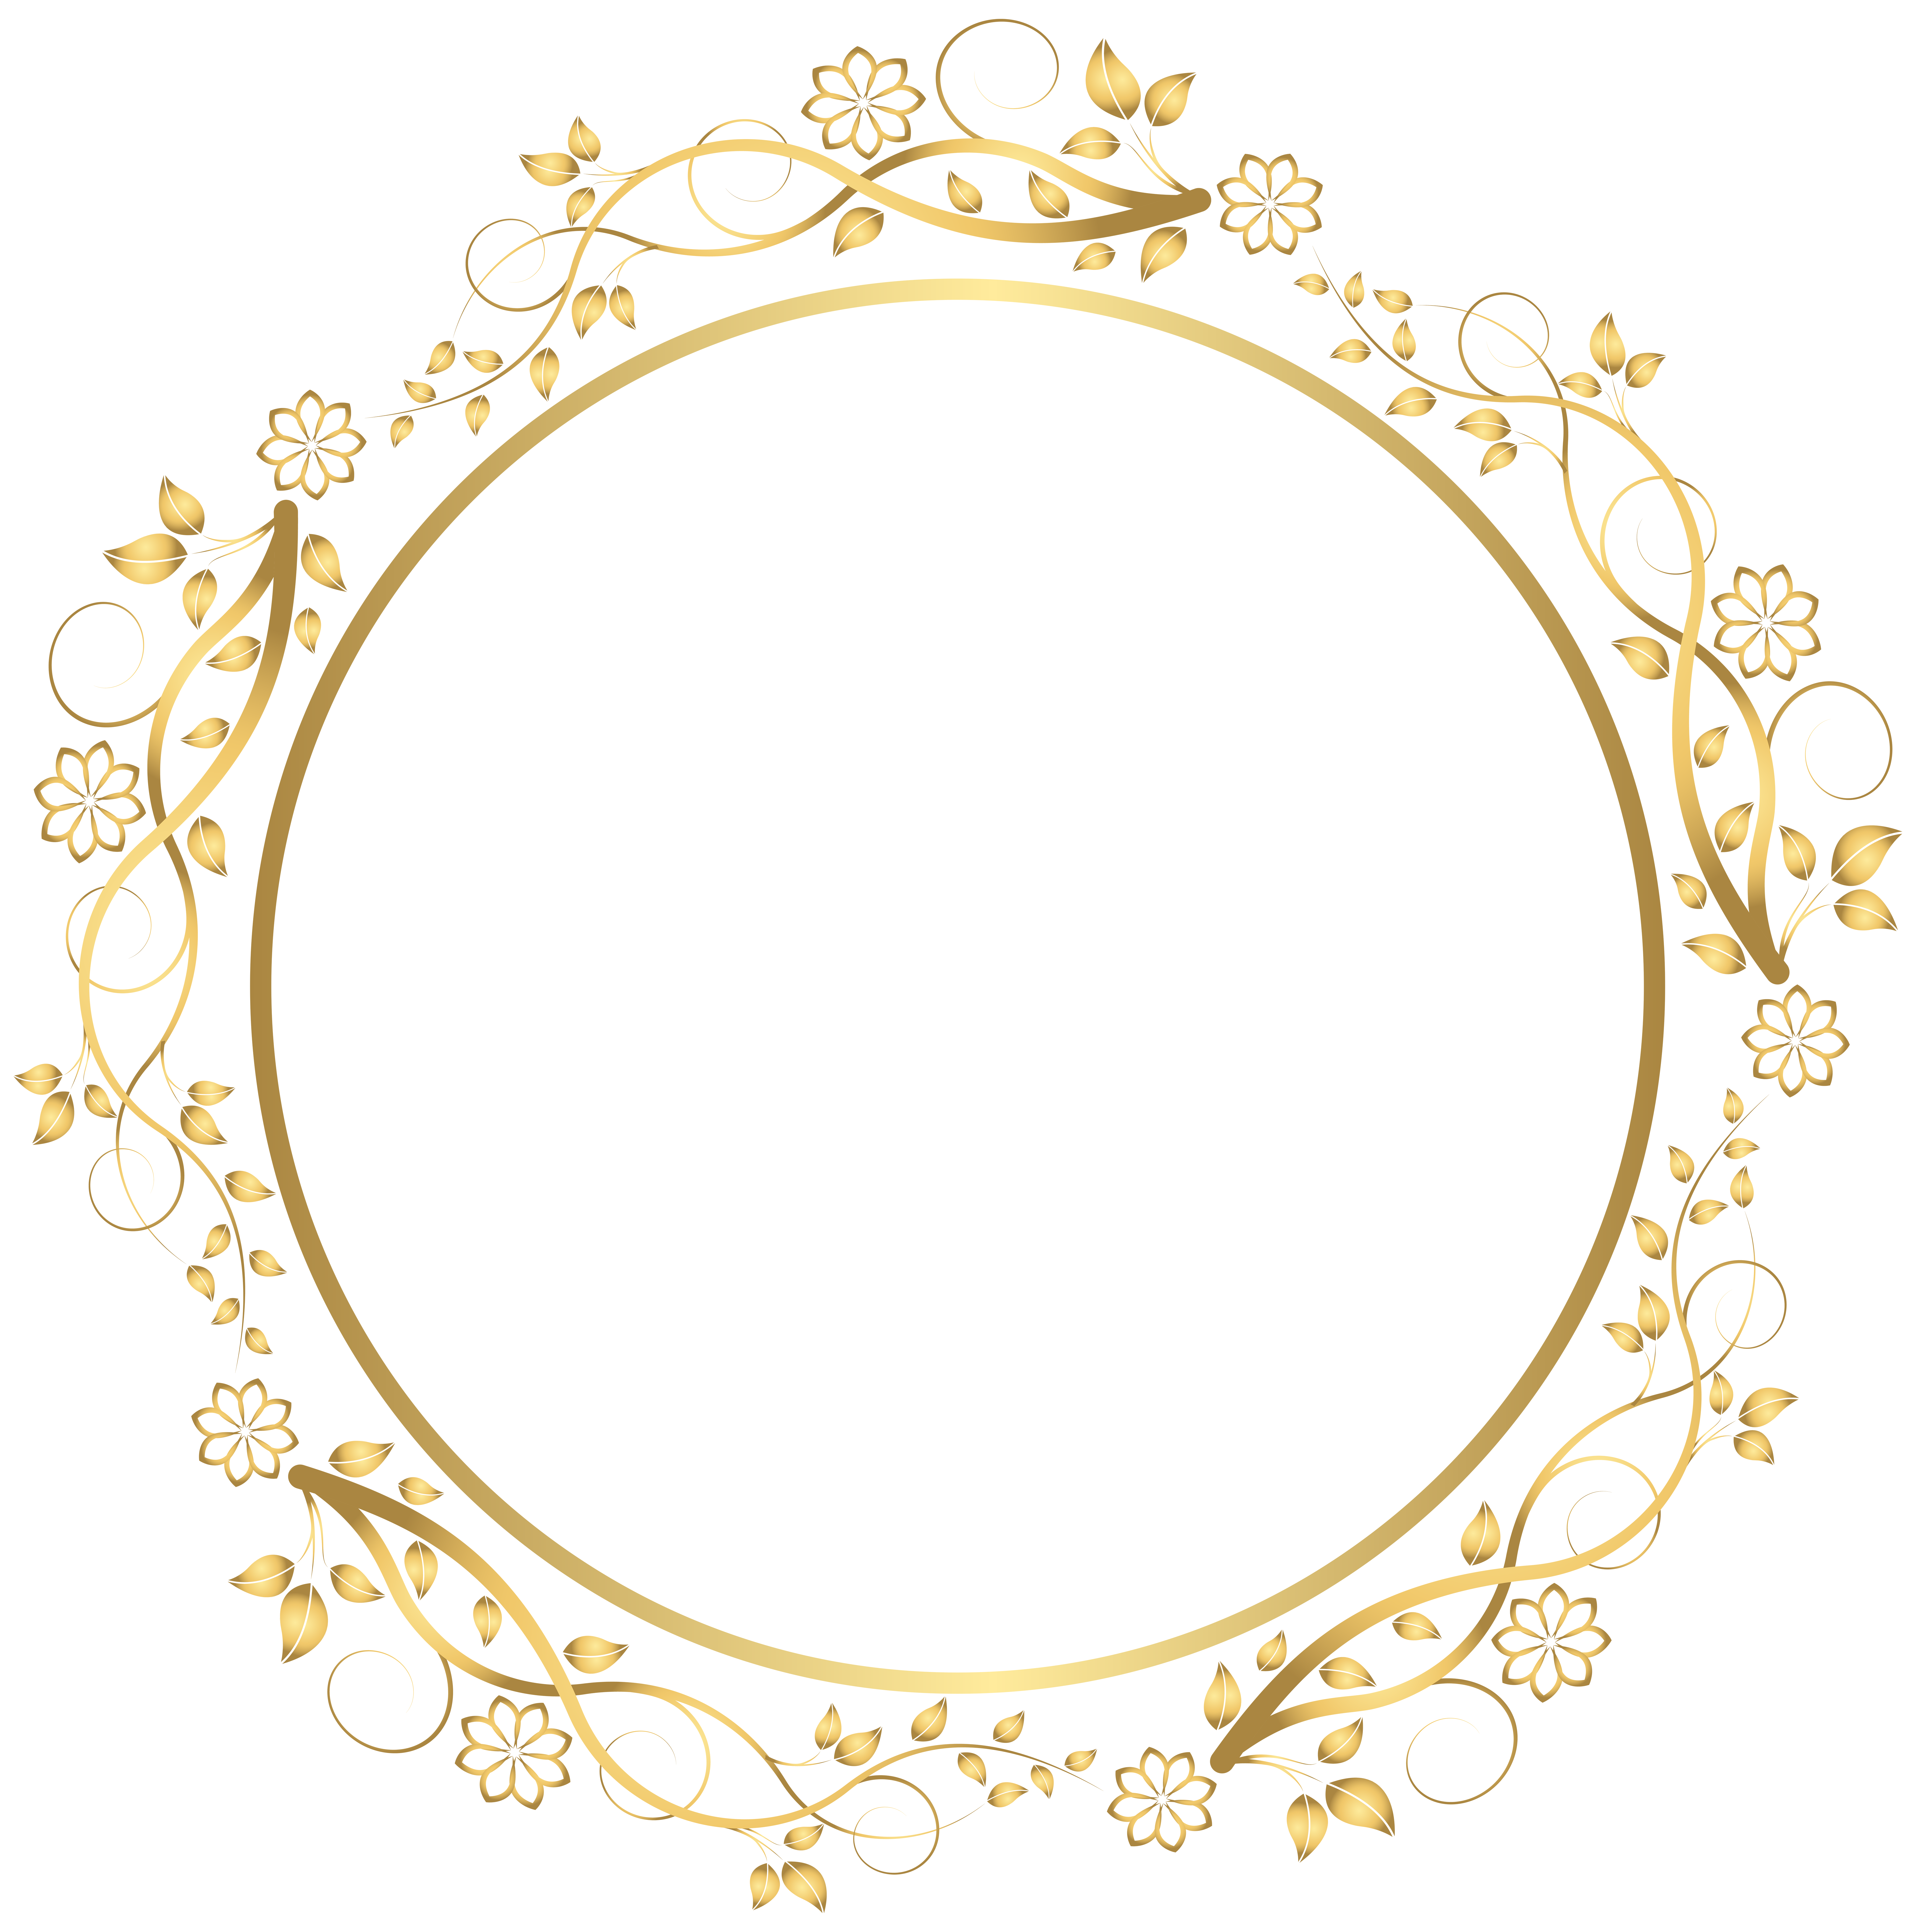 7976x8000 Gold Round Floral Border Transparent Png Clip Art Imageu200b Gallery